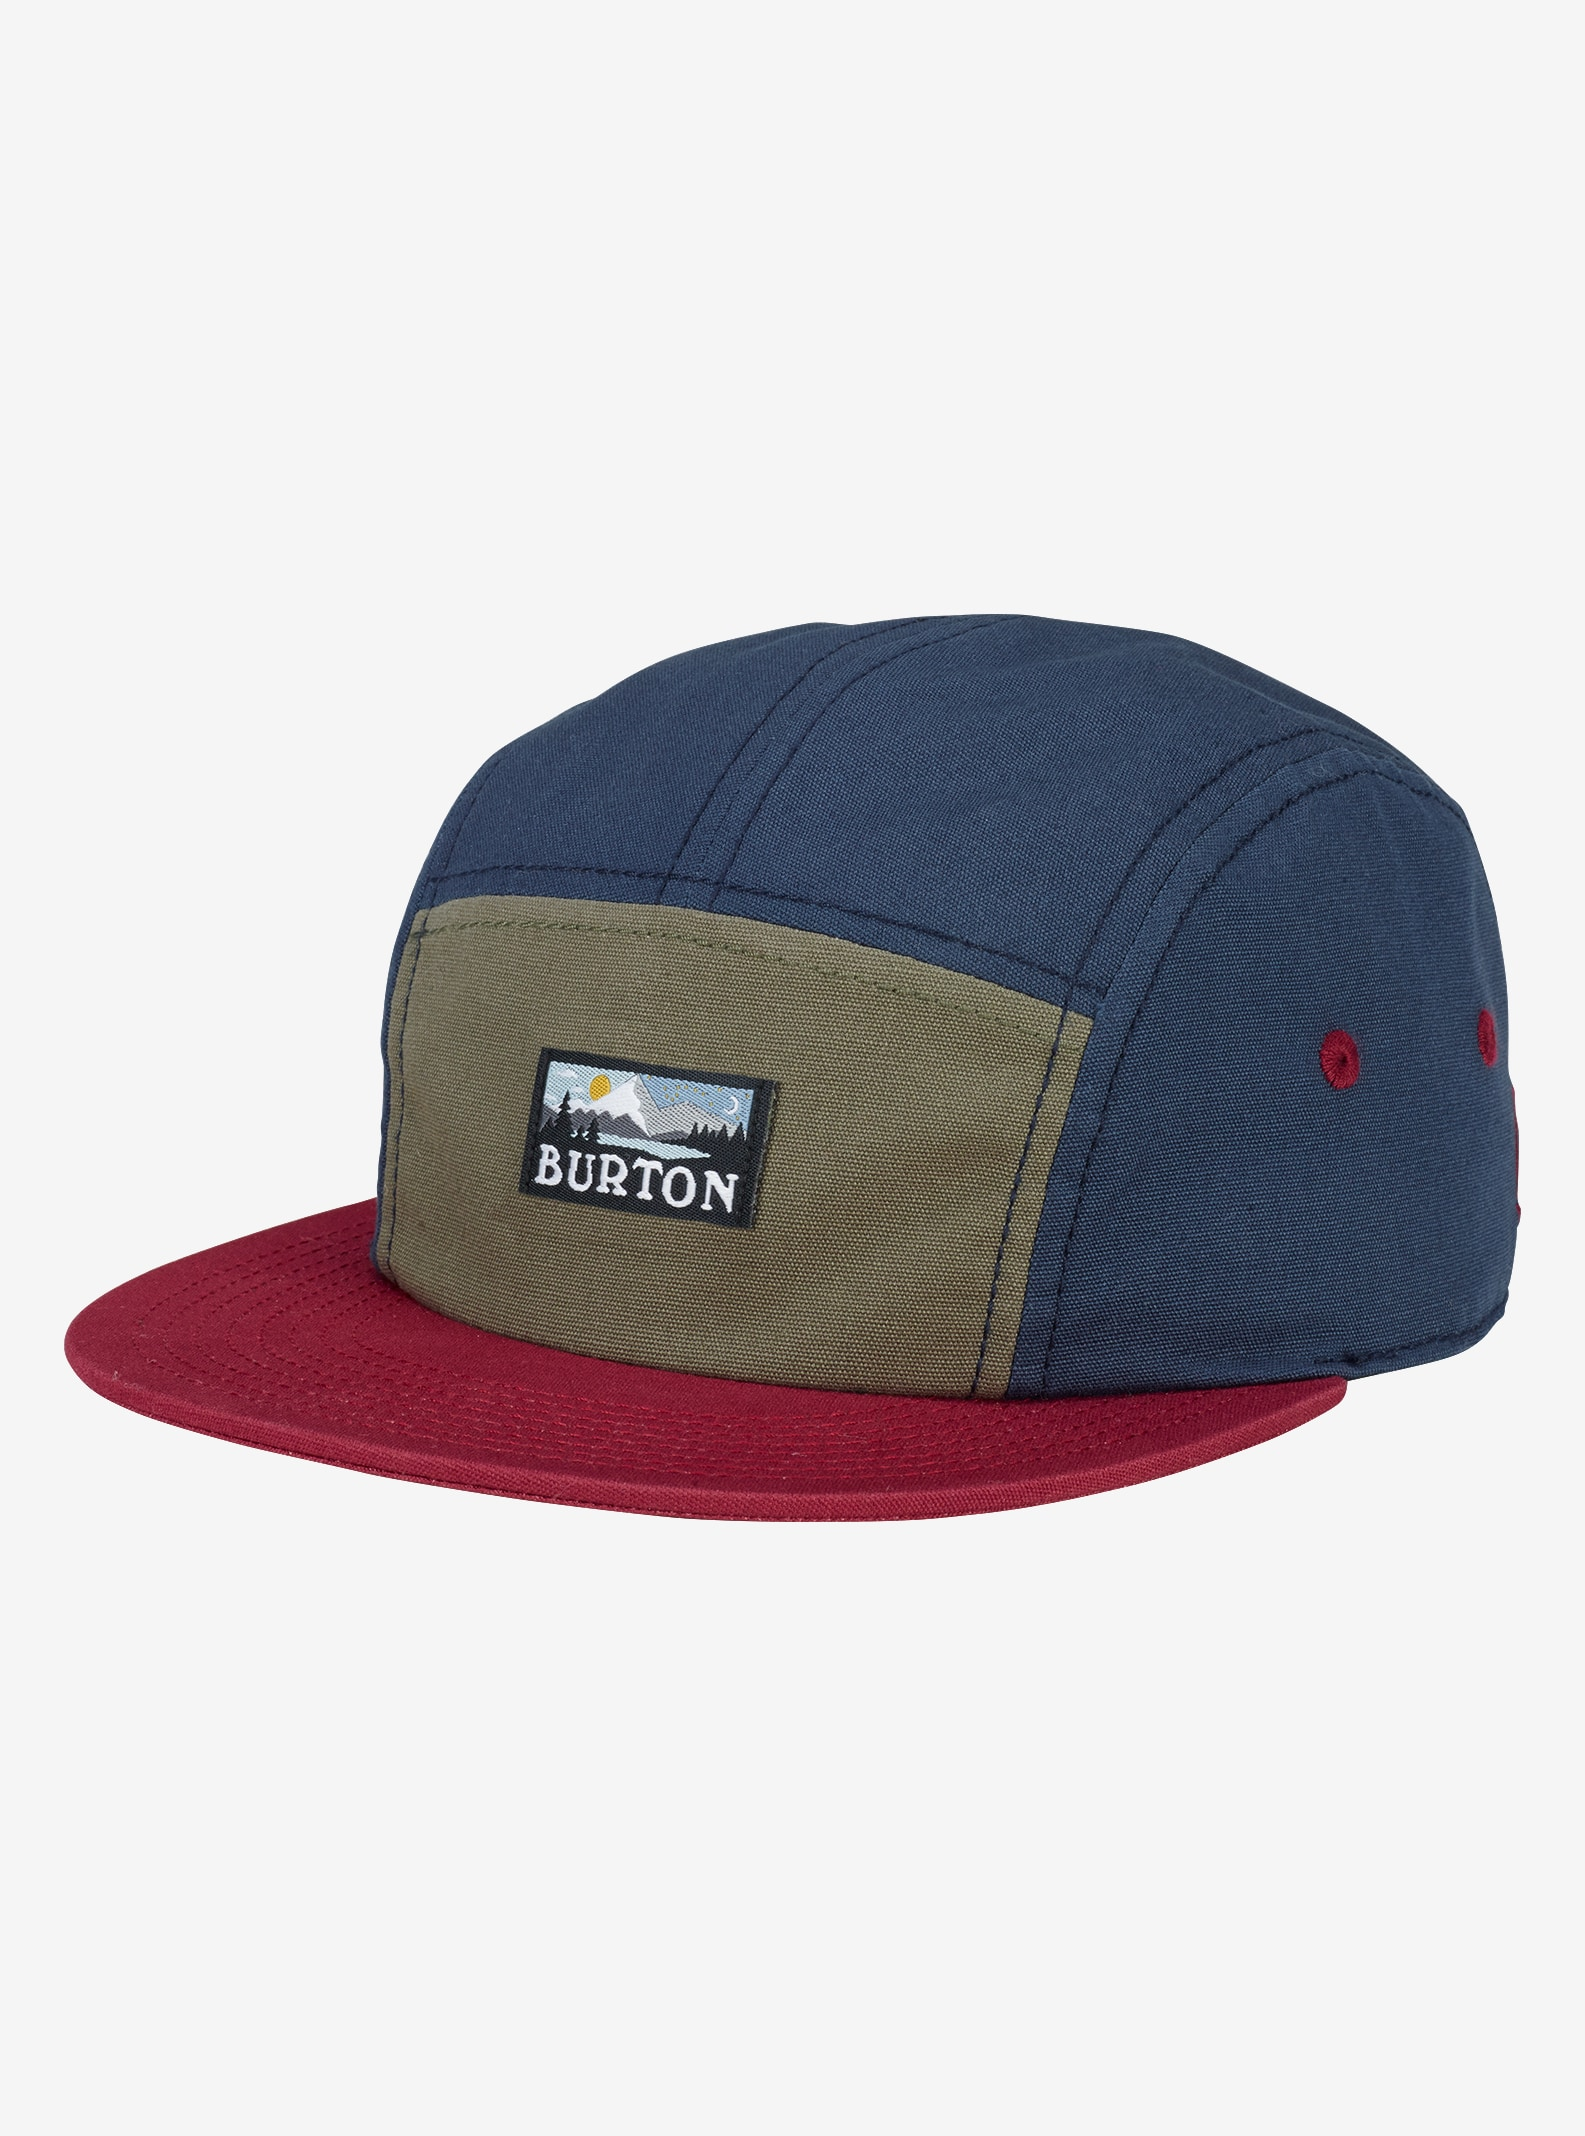 Burton Cordova 5-Panel Camp Hat shown in Indigo